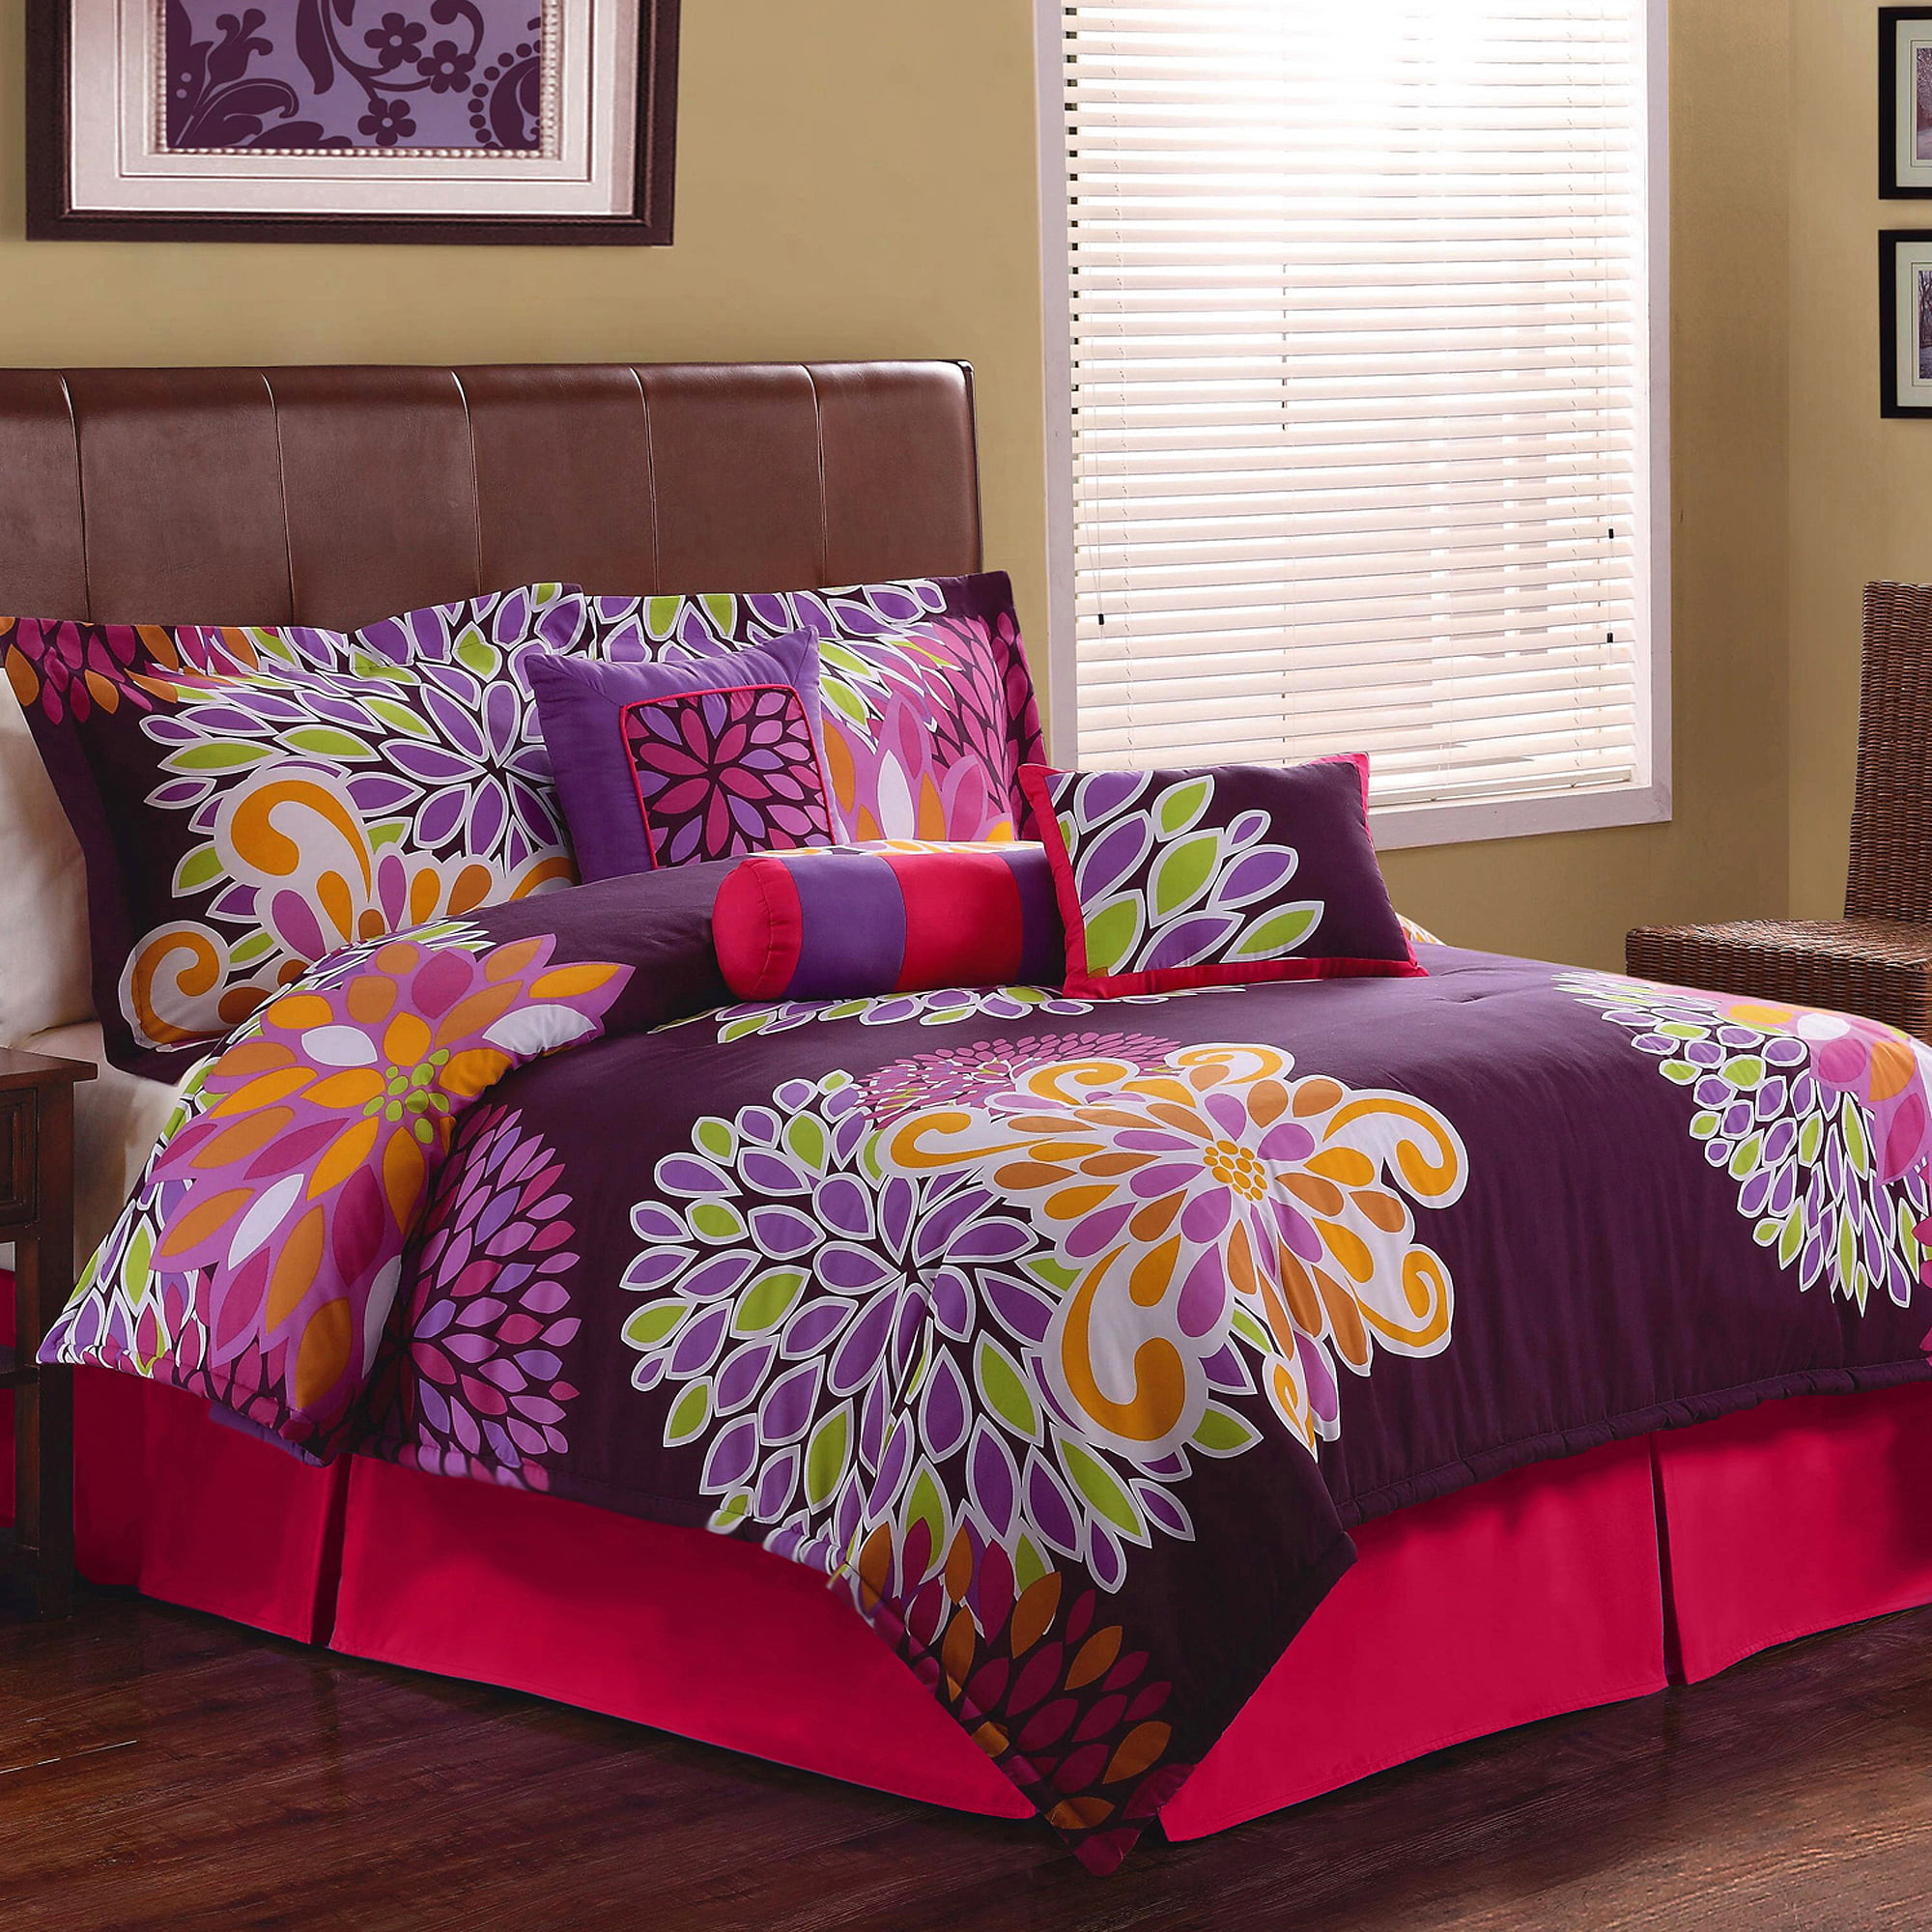 Bedding sets for teenage girls walmart - Bedding Sets For Teenage Girls Walmart 47